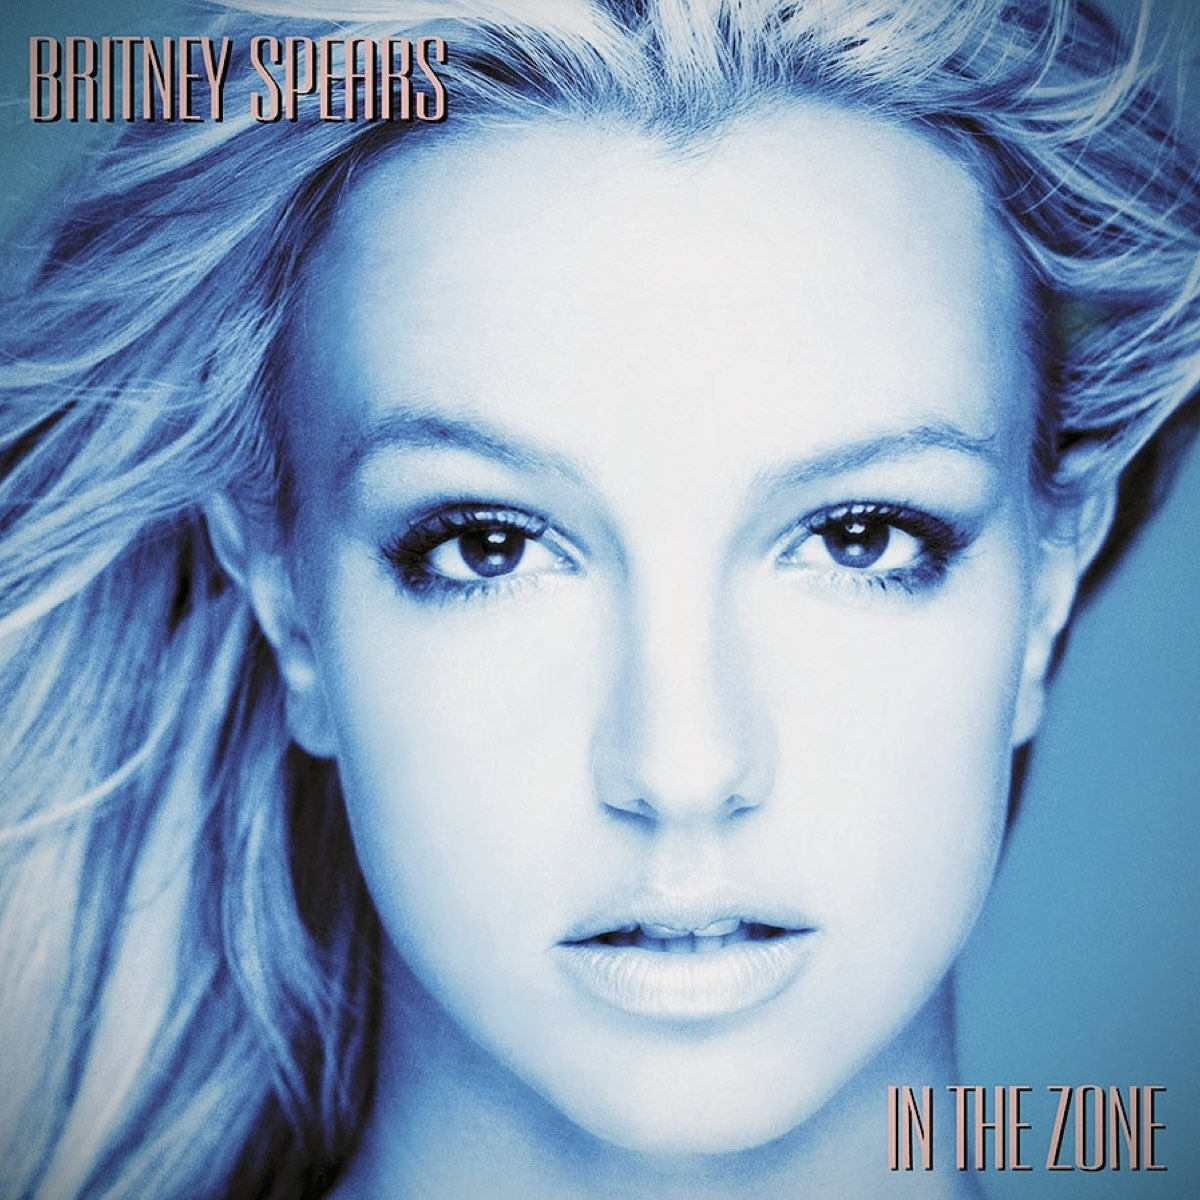 Britney Spears - In the Zone [Urban Outfitters]